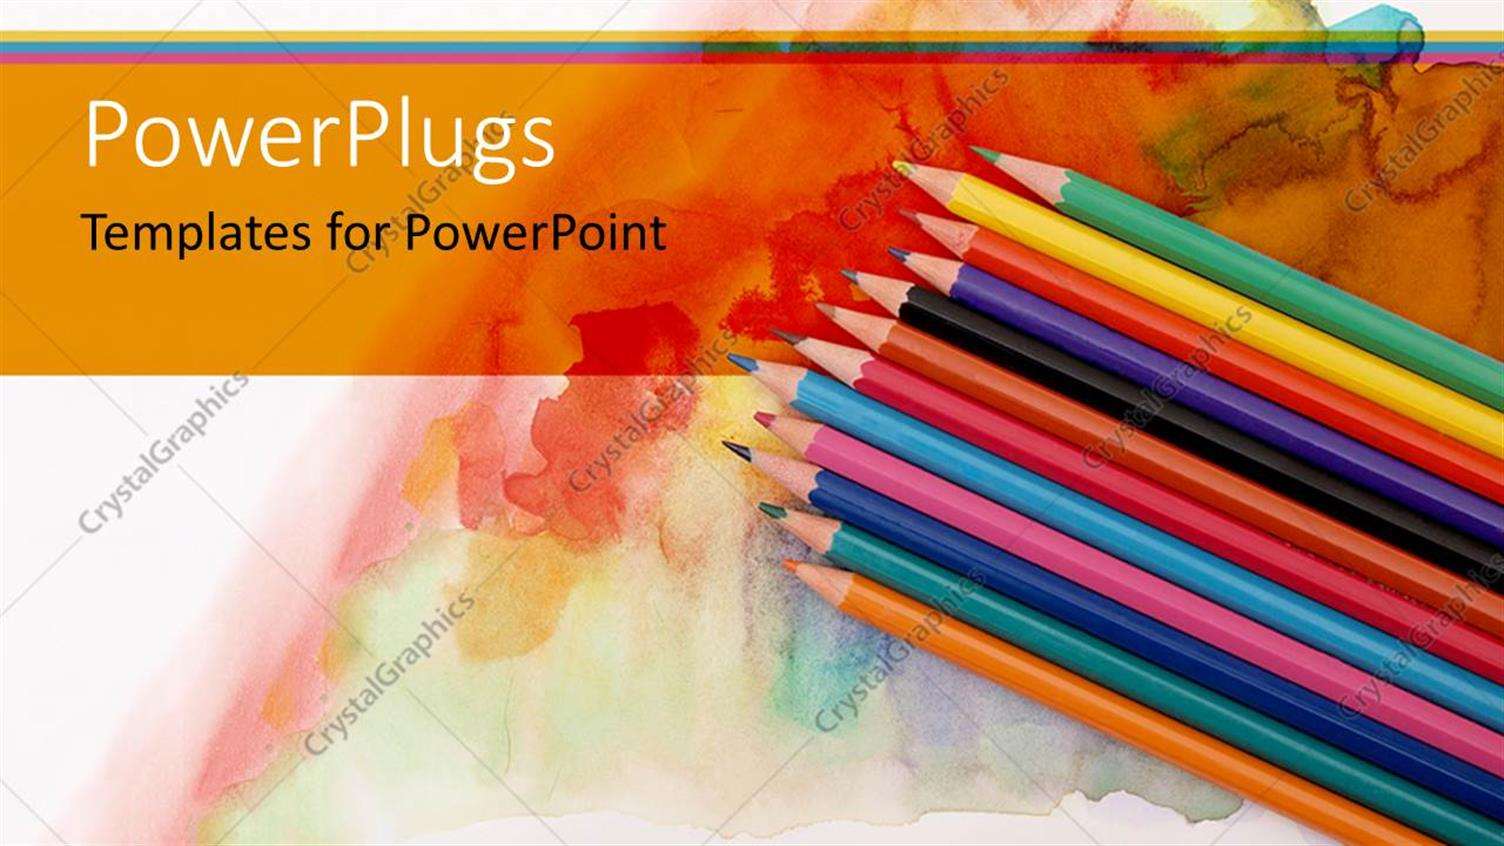 PowerPoint Template Displaying a Collection of Color Pencils with Multi-Colored Background